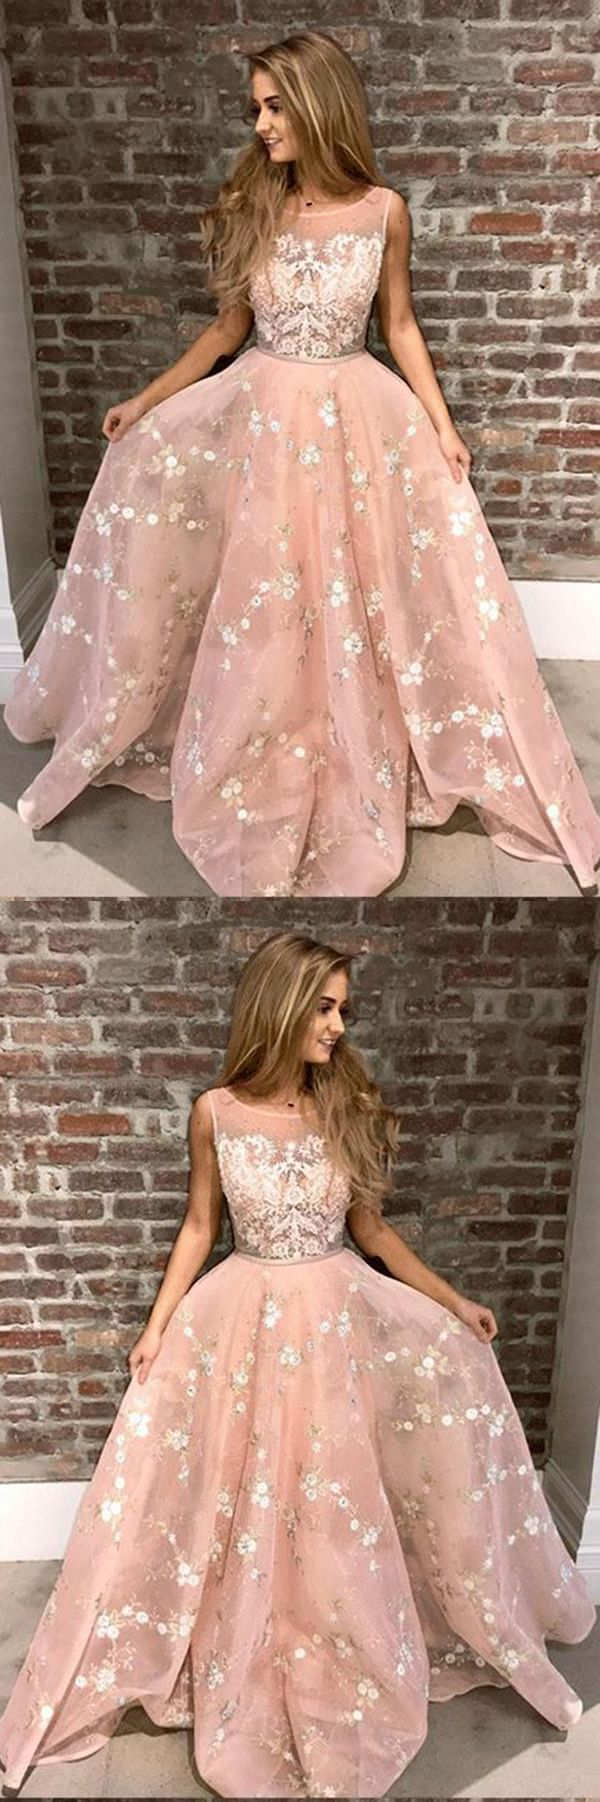 5cdc9a96583 Stylish A-Line Round Neck Pink Prom Dress with Lace Appliques Online OKA44   pink  aline  lace  appliques  long  prom  okdresses  promdresses